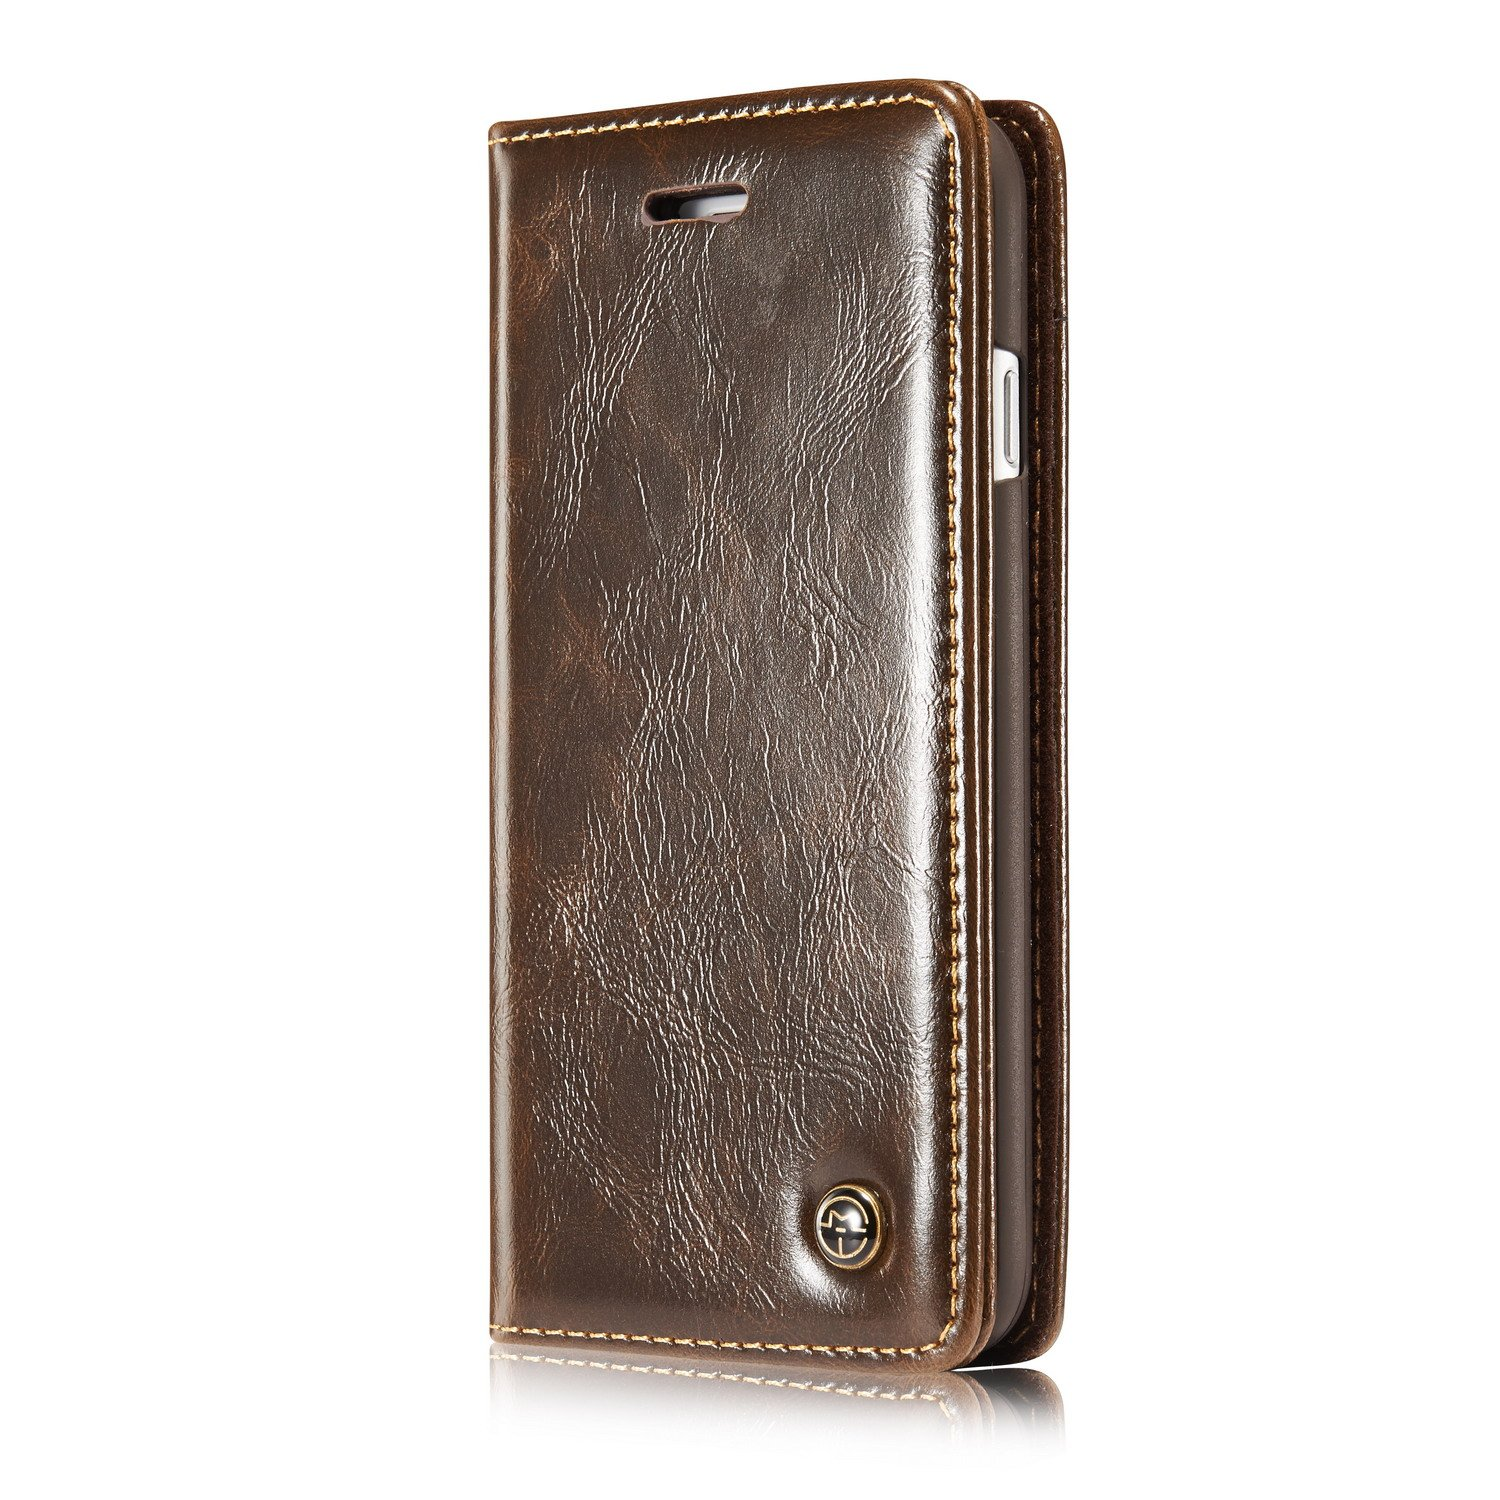 iPhone 8 Wallet Case,XRPow iPhone 7 Magnetic Folio Flip Leather Wallet Stand Smart Protective Case with Card Slot Holder for iPhone 7/8 4.7inch (Brown)